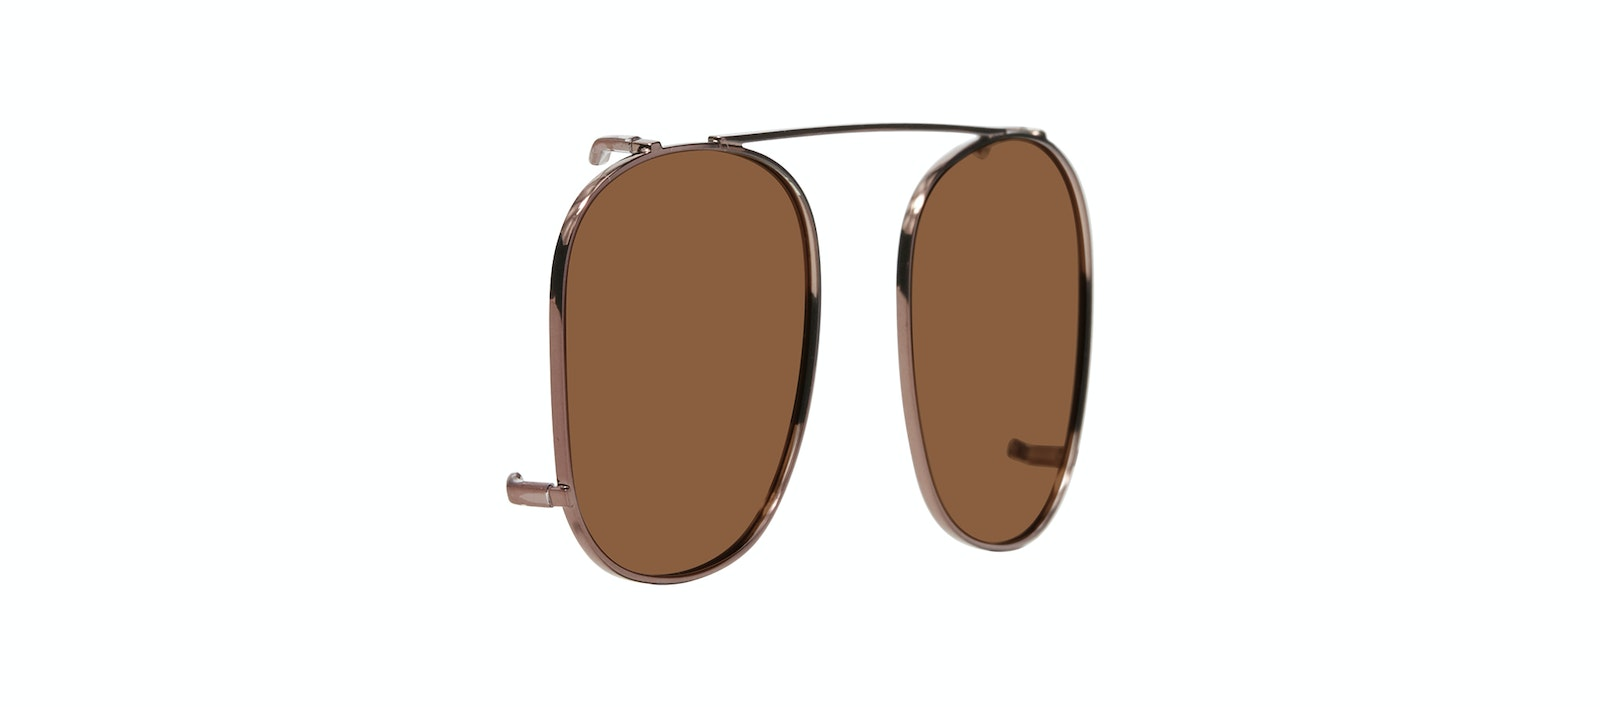 Affordable Fashion Glasses Accessory Men Apex Clip S Copper Tilt